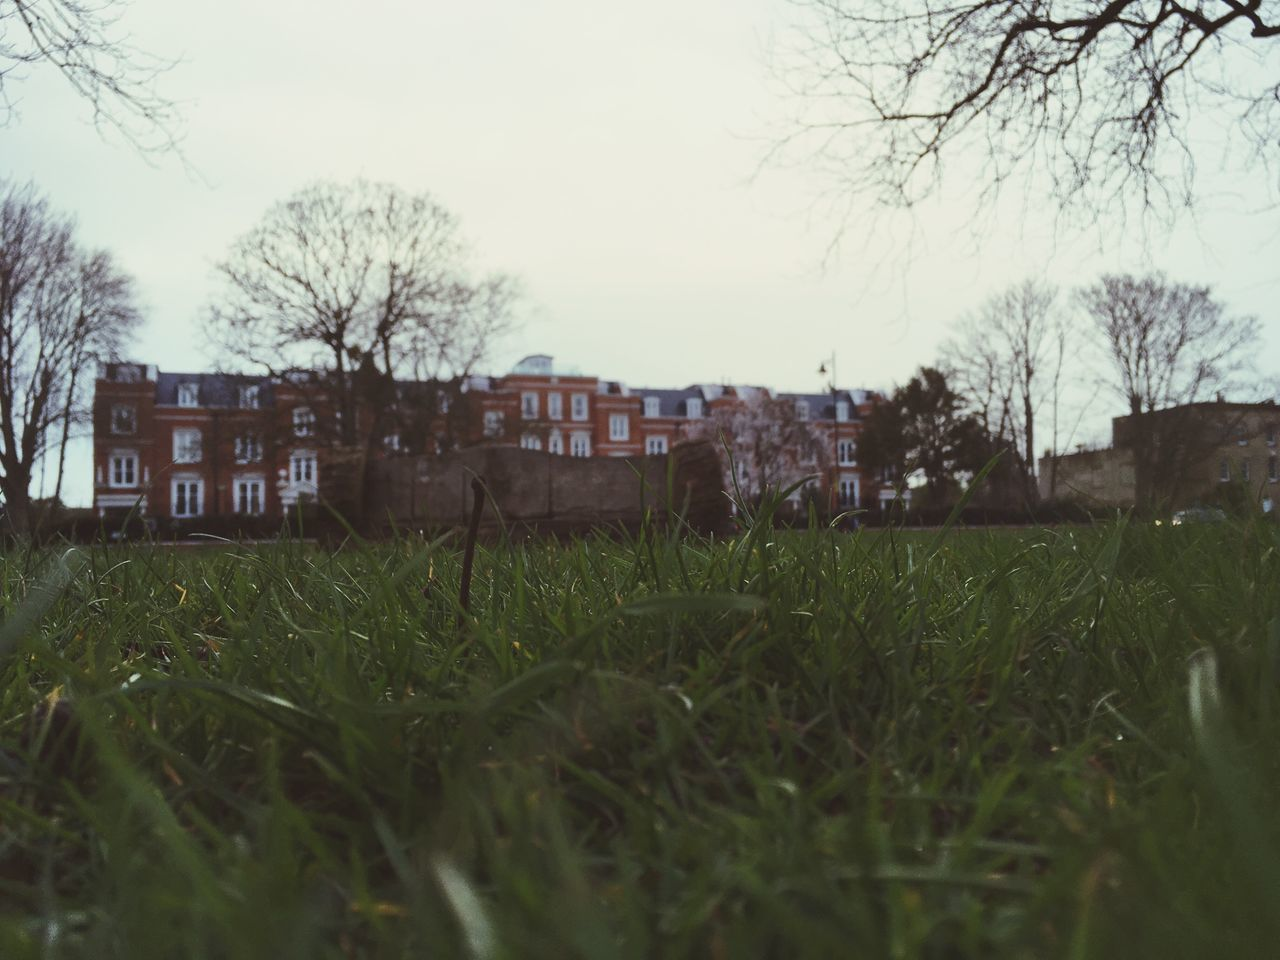 grass, architecture, building exterior, house, built structure, field, tree, outdoors, sky, no people, nature, clear sky, day